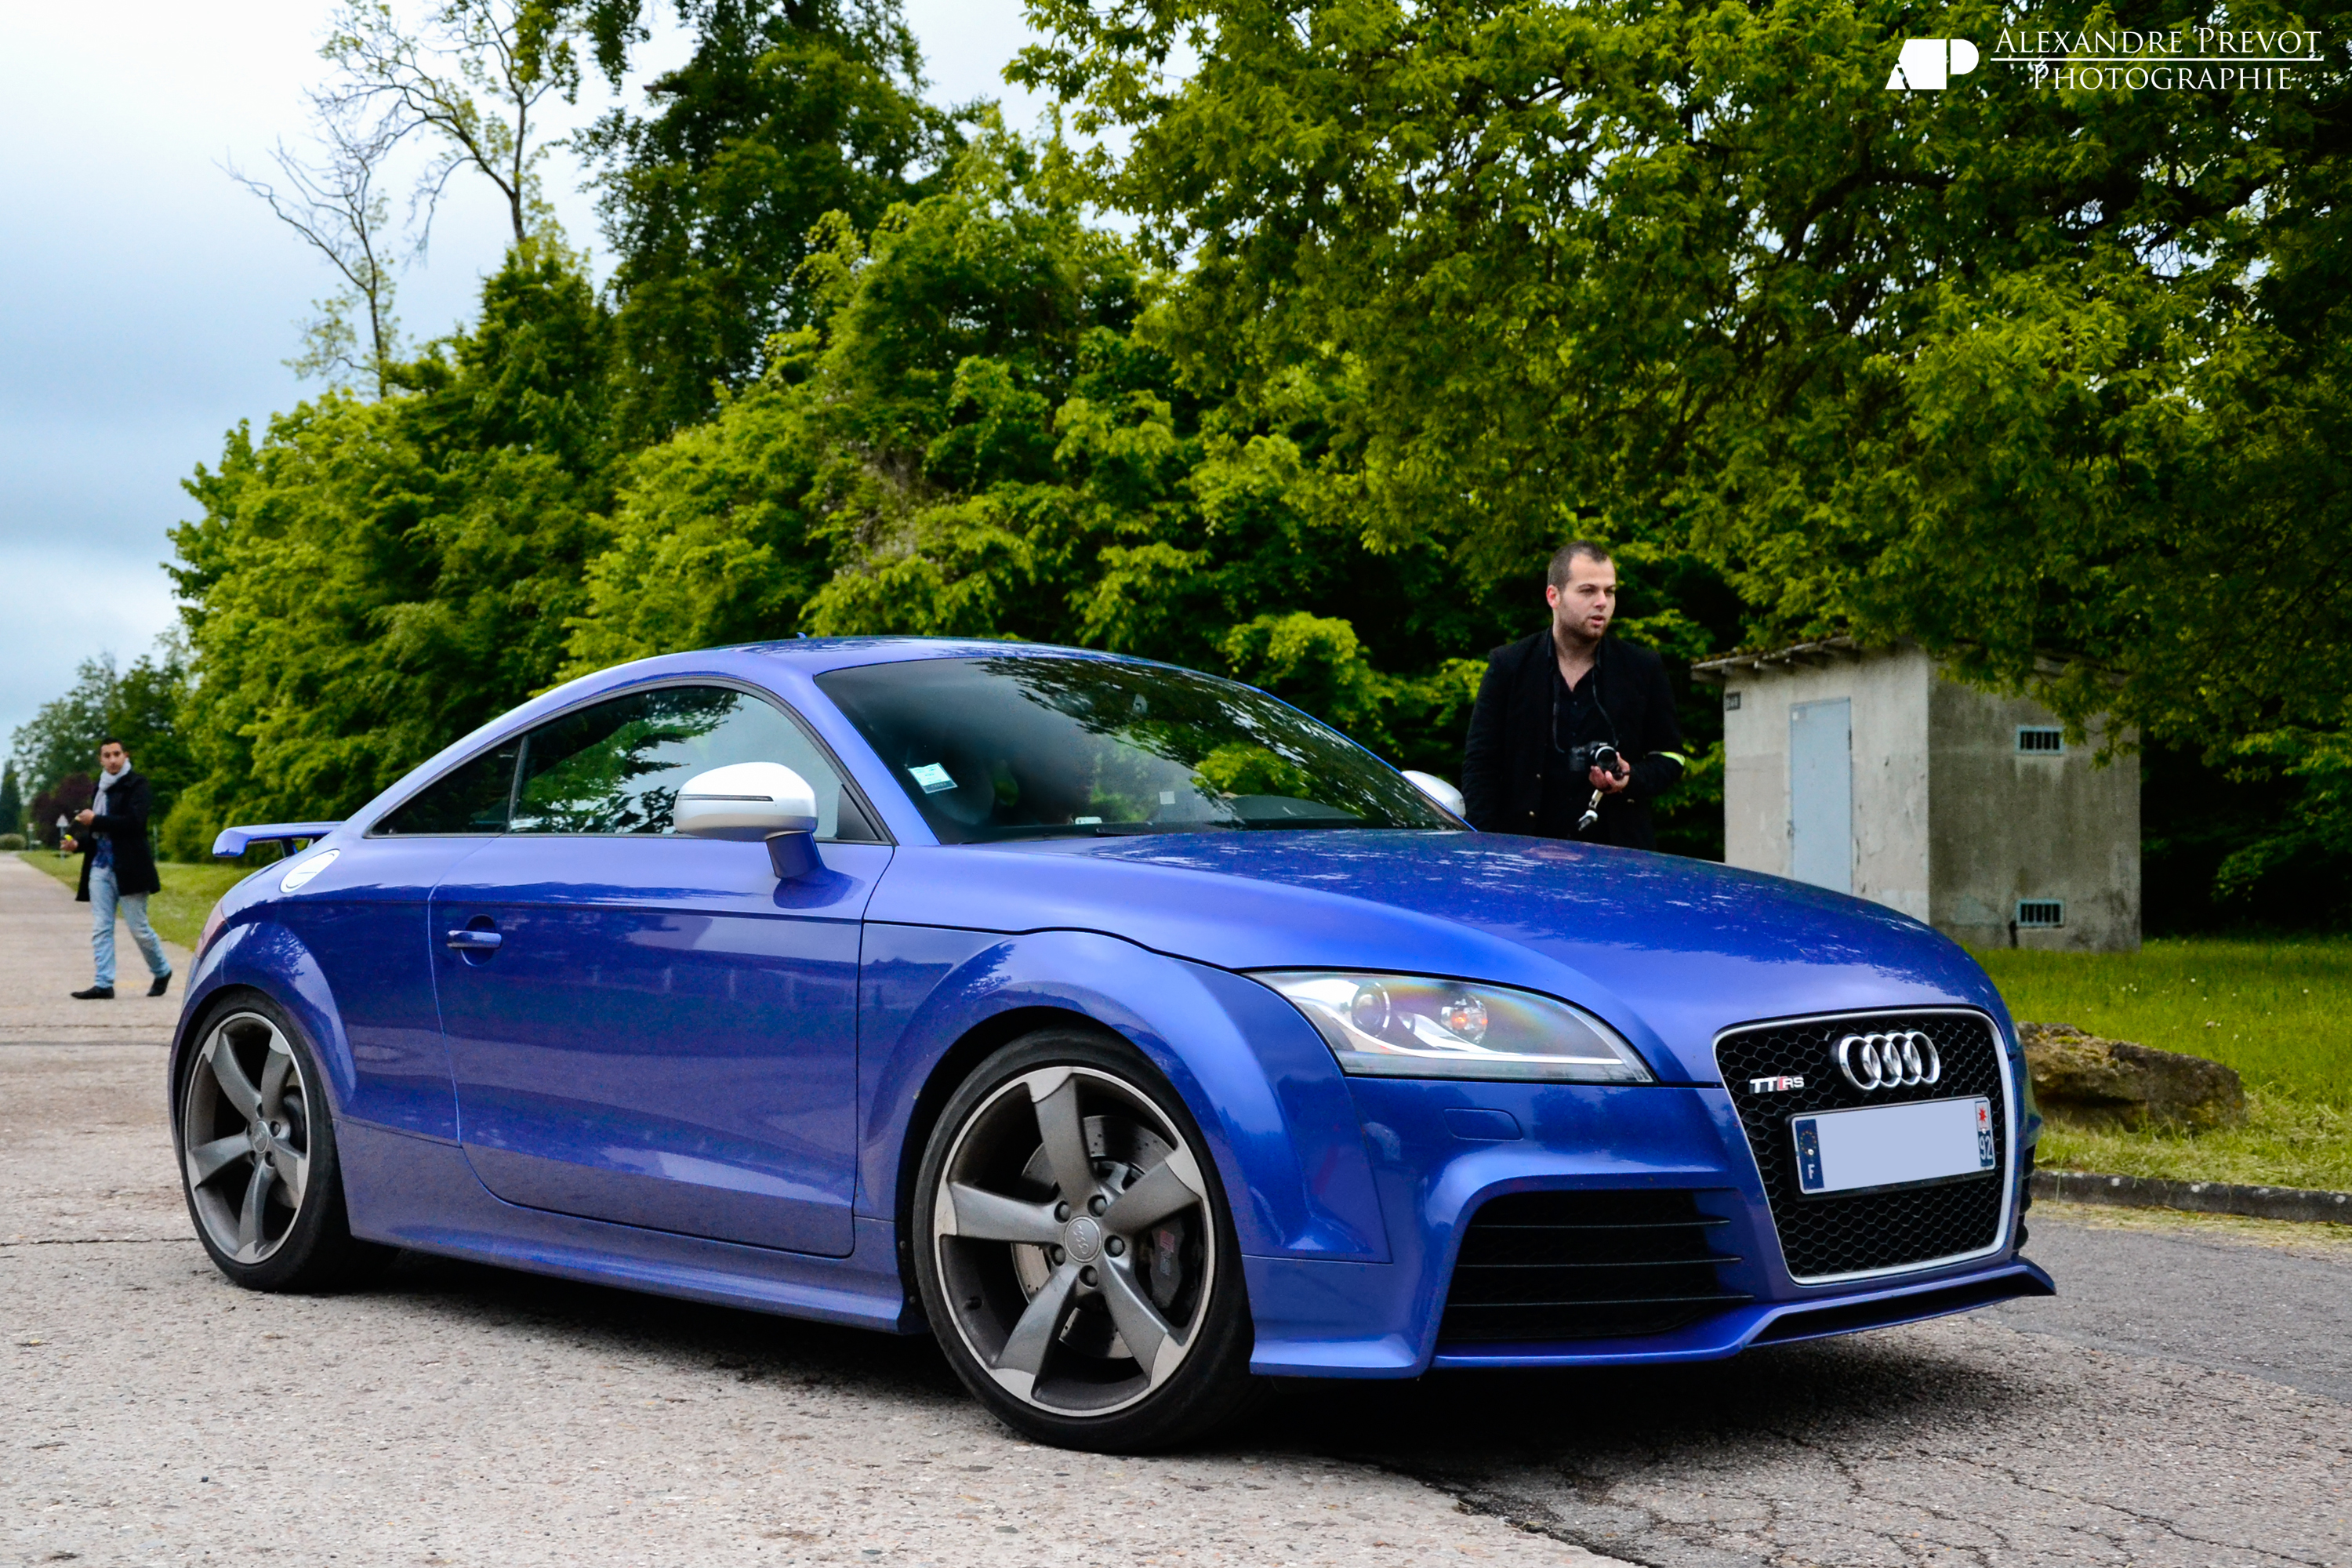 2013 Audi Tt Rs Blue 200 Interior And Exterior Images